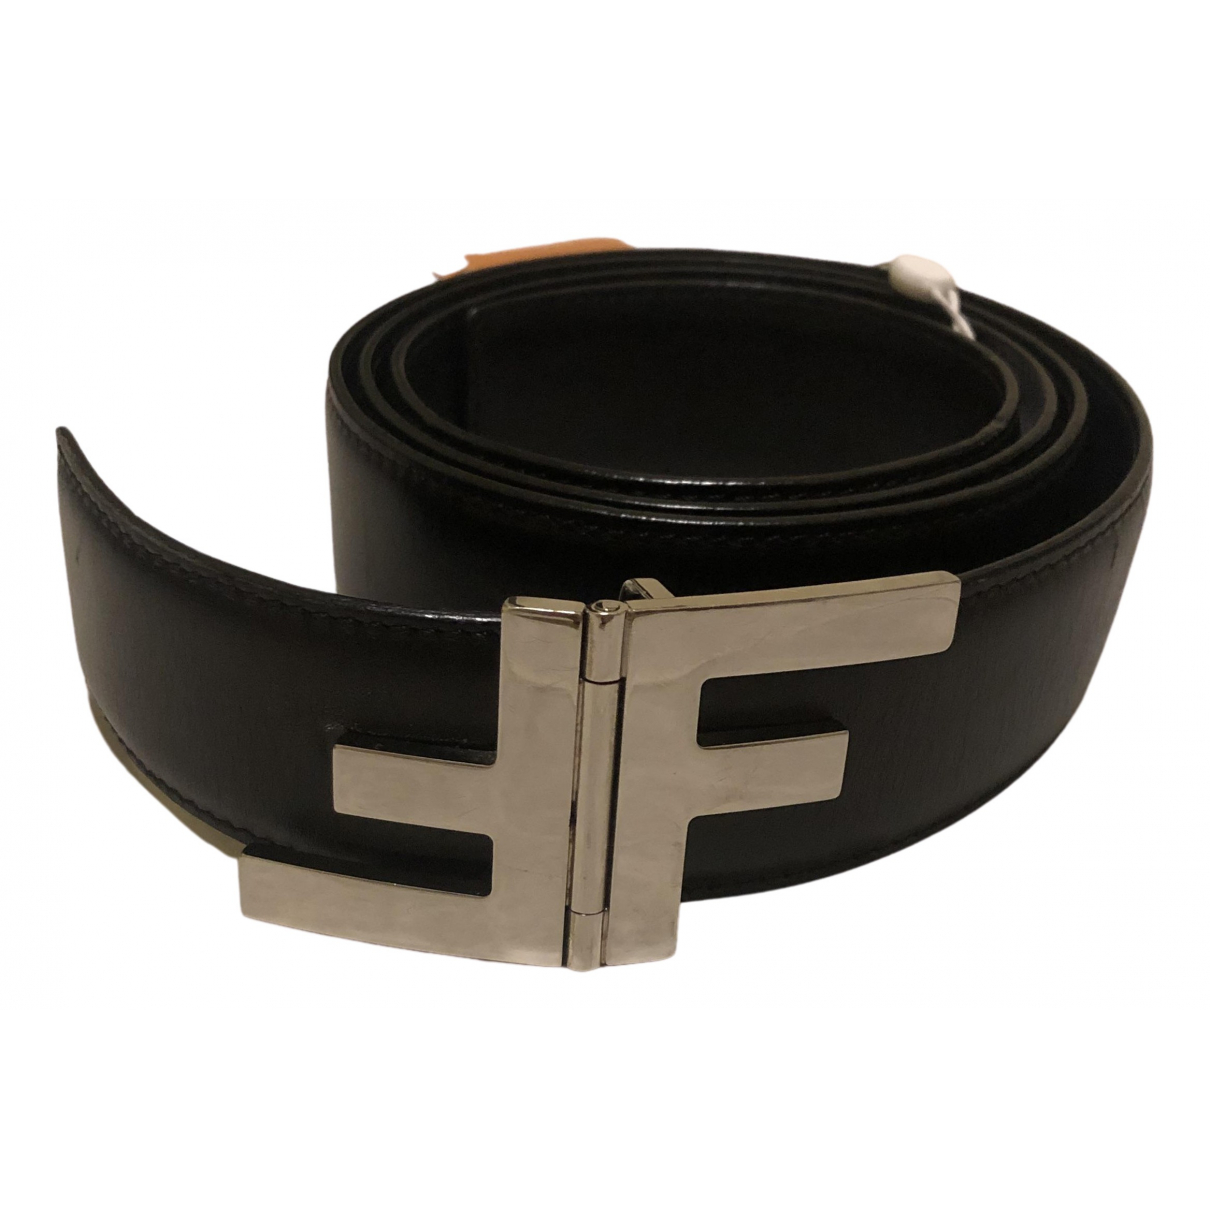 Fendi N Black Leather belt for Women 95 cm